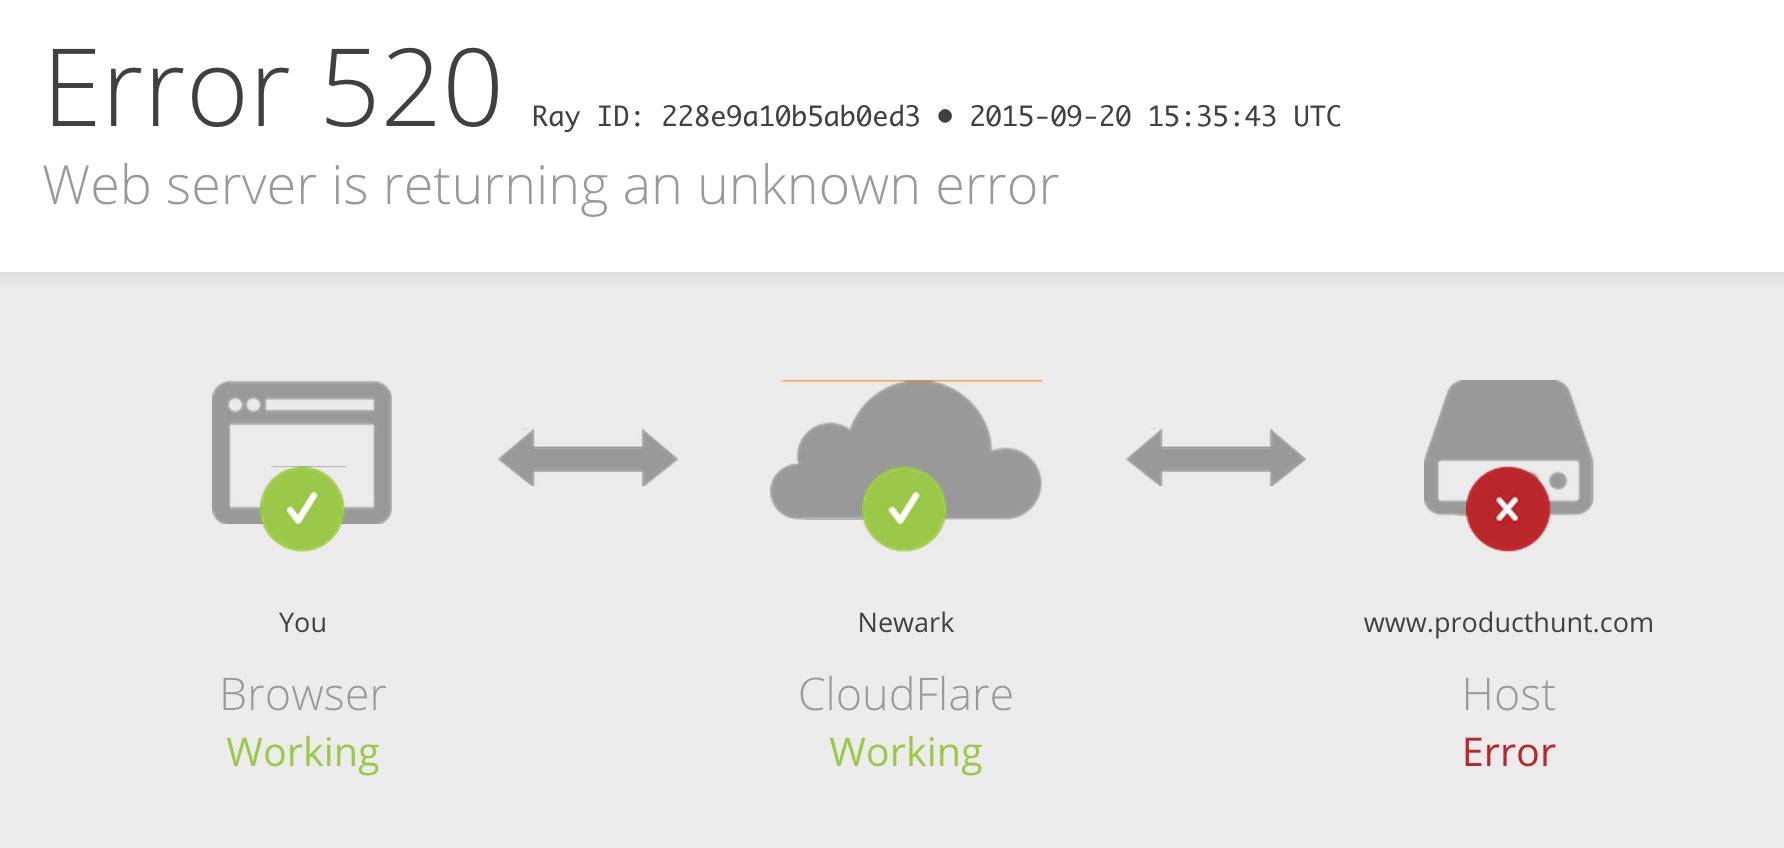 producthunt down